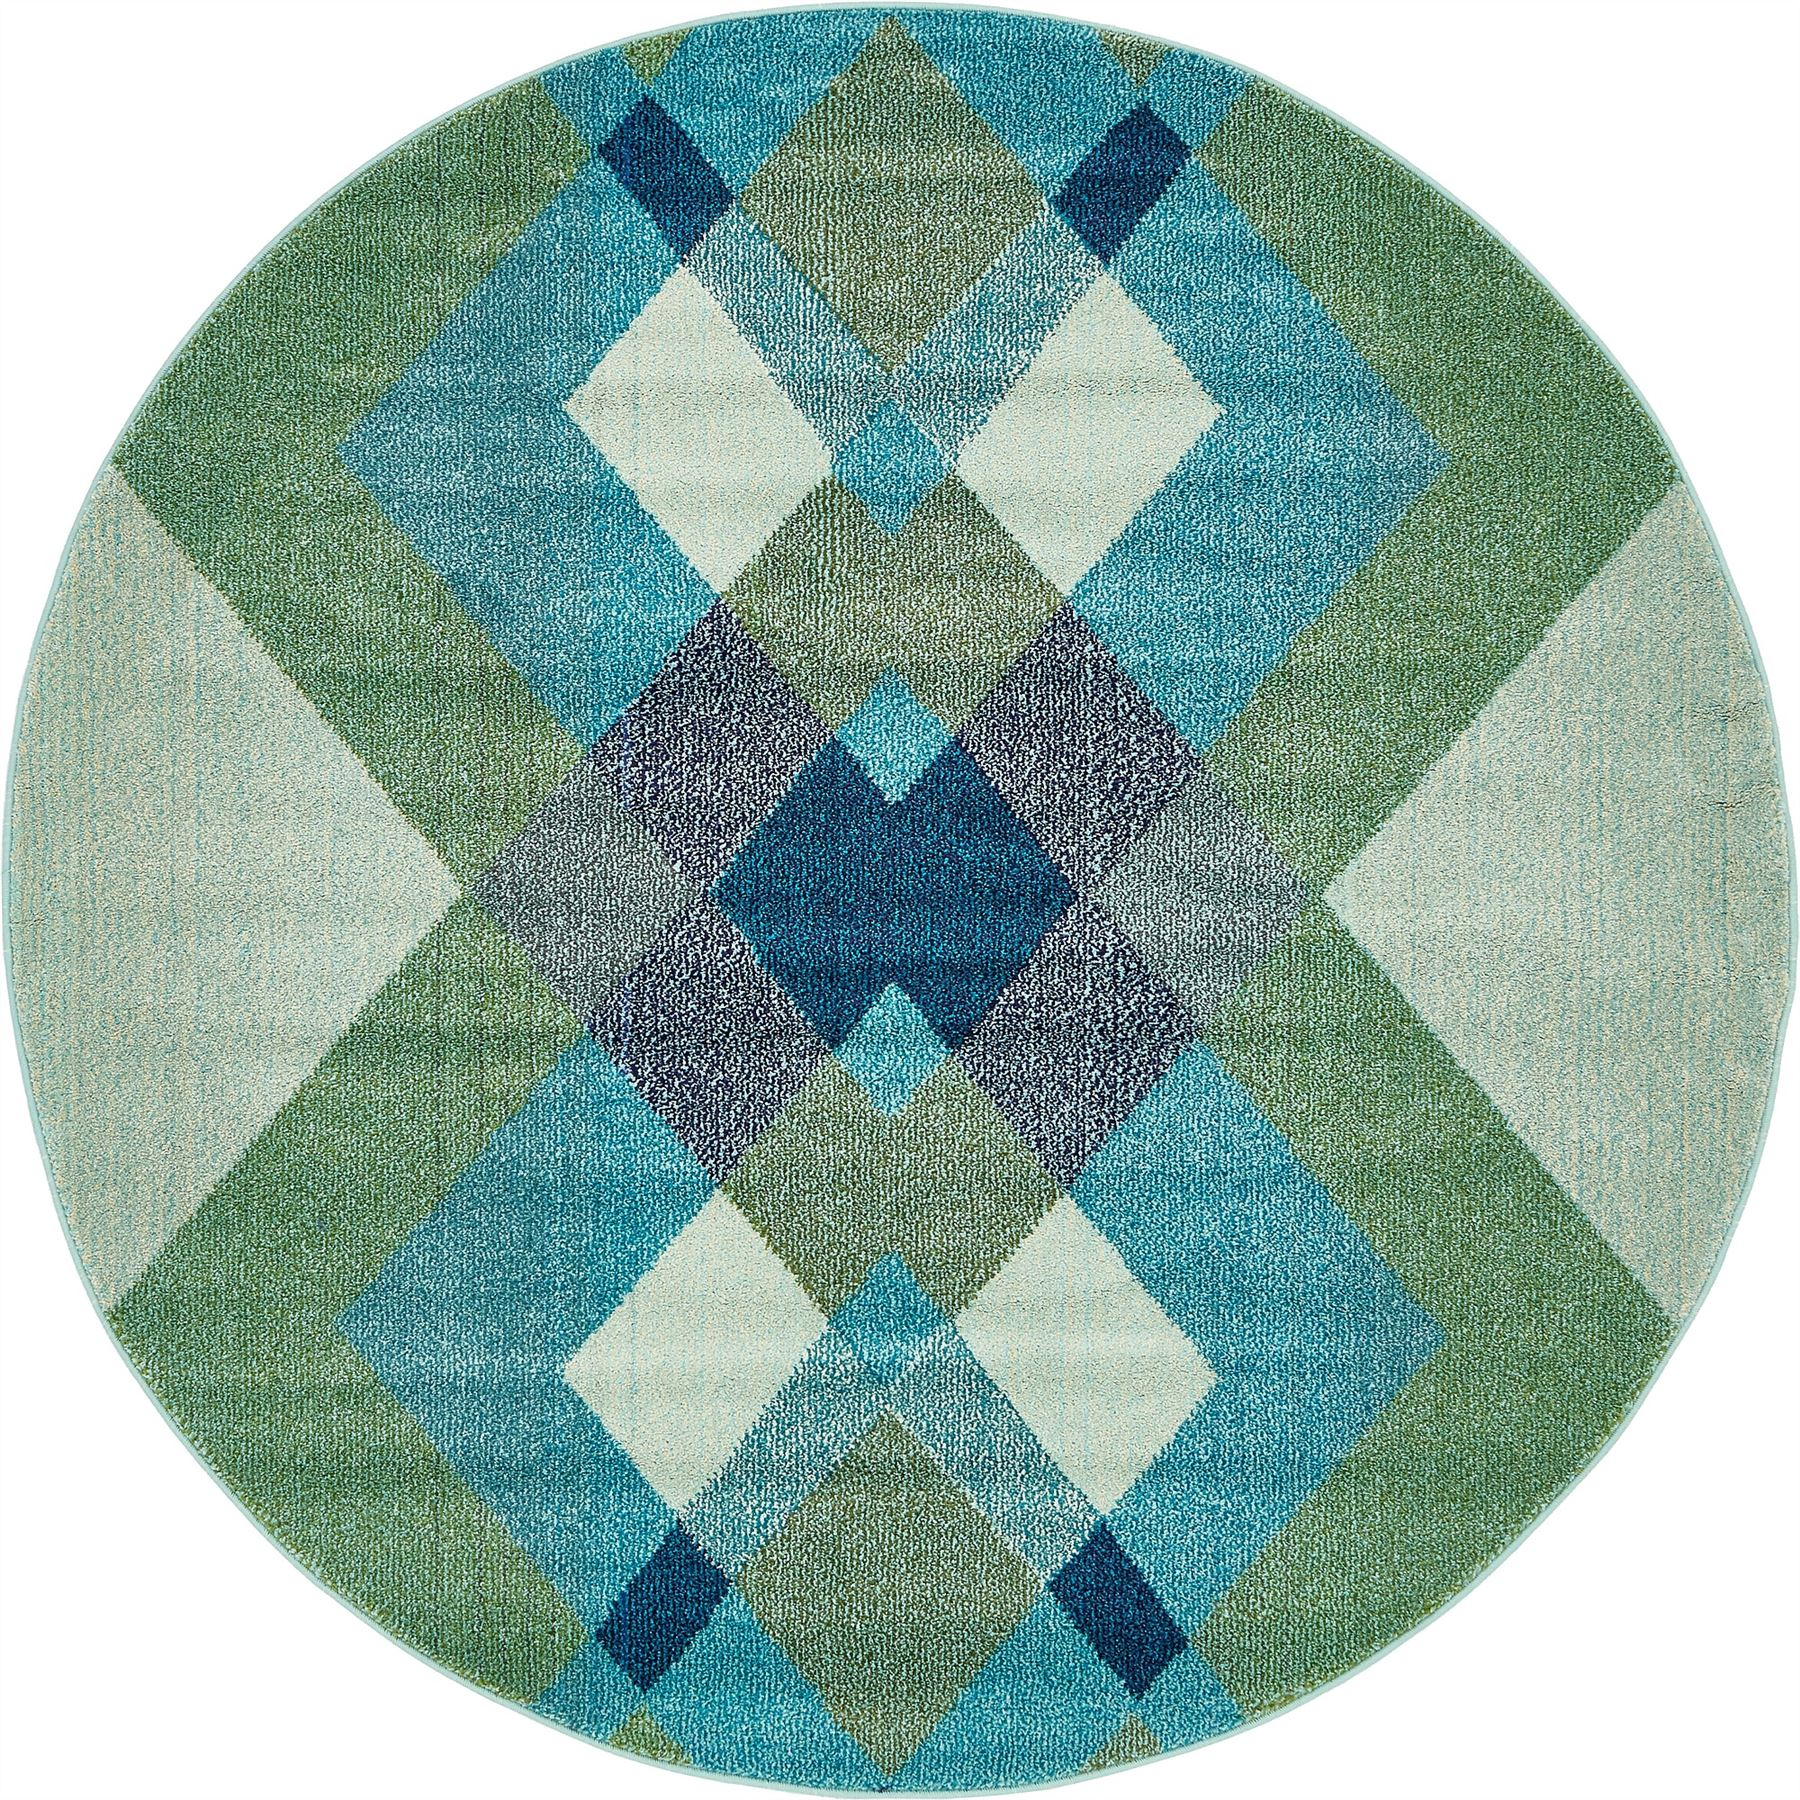 Checked Area Rugs: Fringeless Geometric Carpet Moroccan Checkered Style Rug